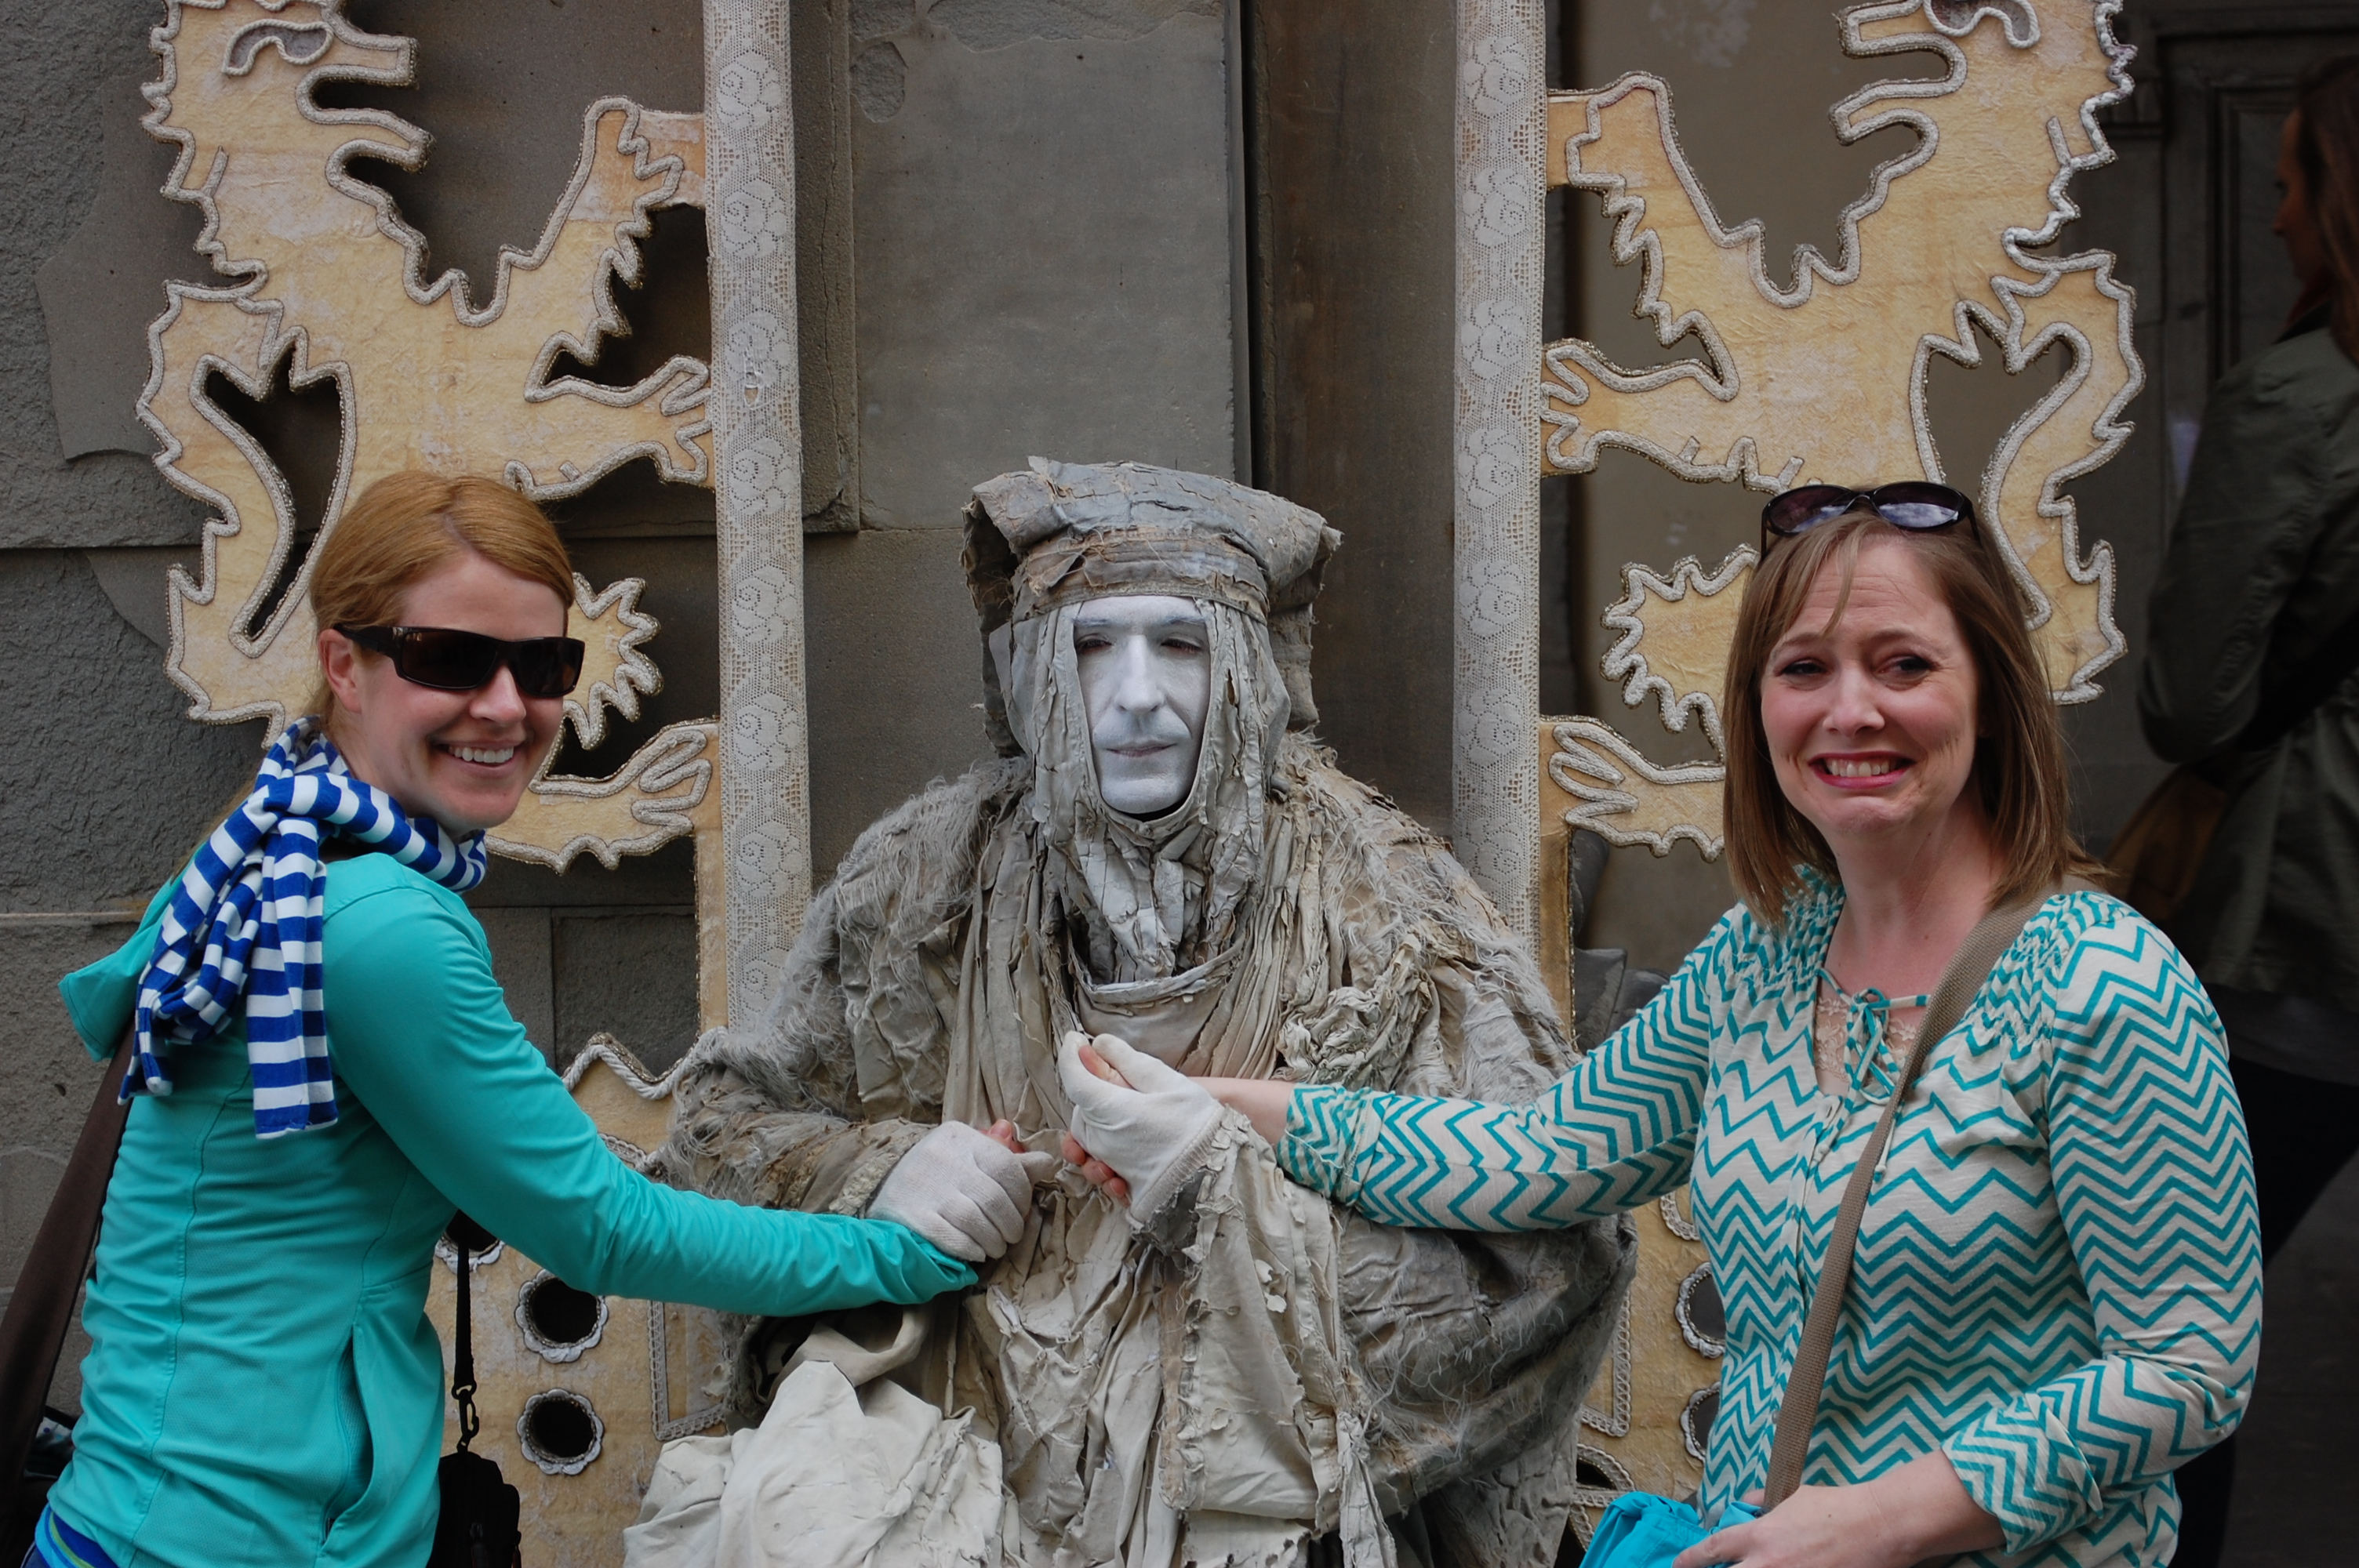 Coffee break erin duh s everything - Lisa And Erin In Florence This Guy Made Like A Statue And Wouldn T